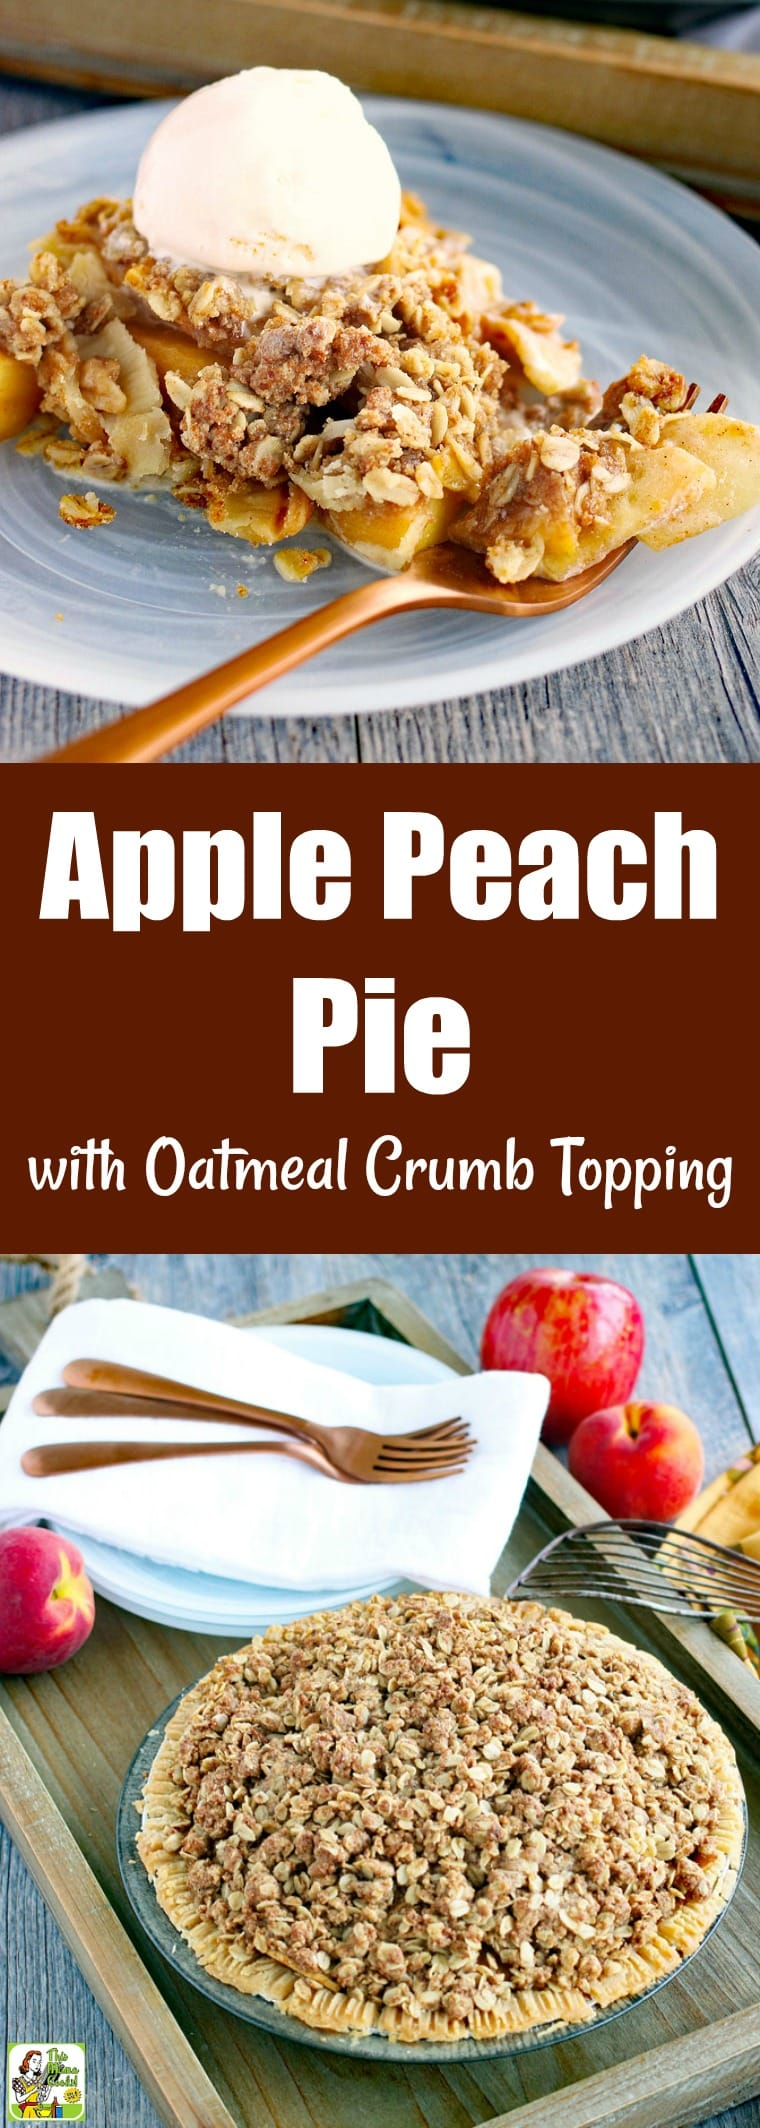 This Apple Peach Pie with Oatmeal Crumb Topping is a terrific dessert for using up fruit. With a simple crumb topping and store-bought crust, it comes together in no time. Gluten-free with vegan and dairy-free options. #recipes #easy #recipeoftheday #glutenfree #glutenfreerecipes #desserts #dessertrecipes #dessertideas #baking #pie #dairyfree #veganfood #vegan #veganrecipes #vegandesserts #apple #apples